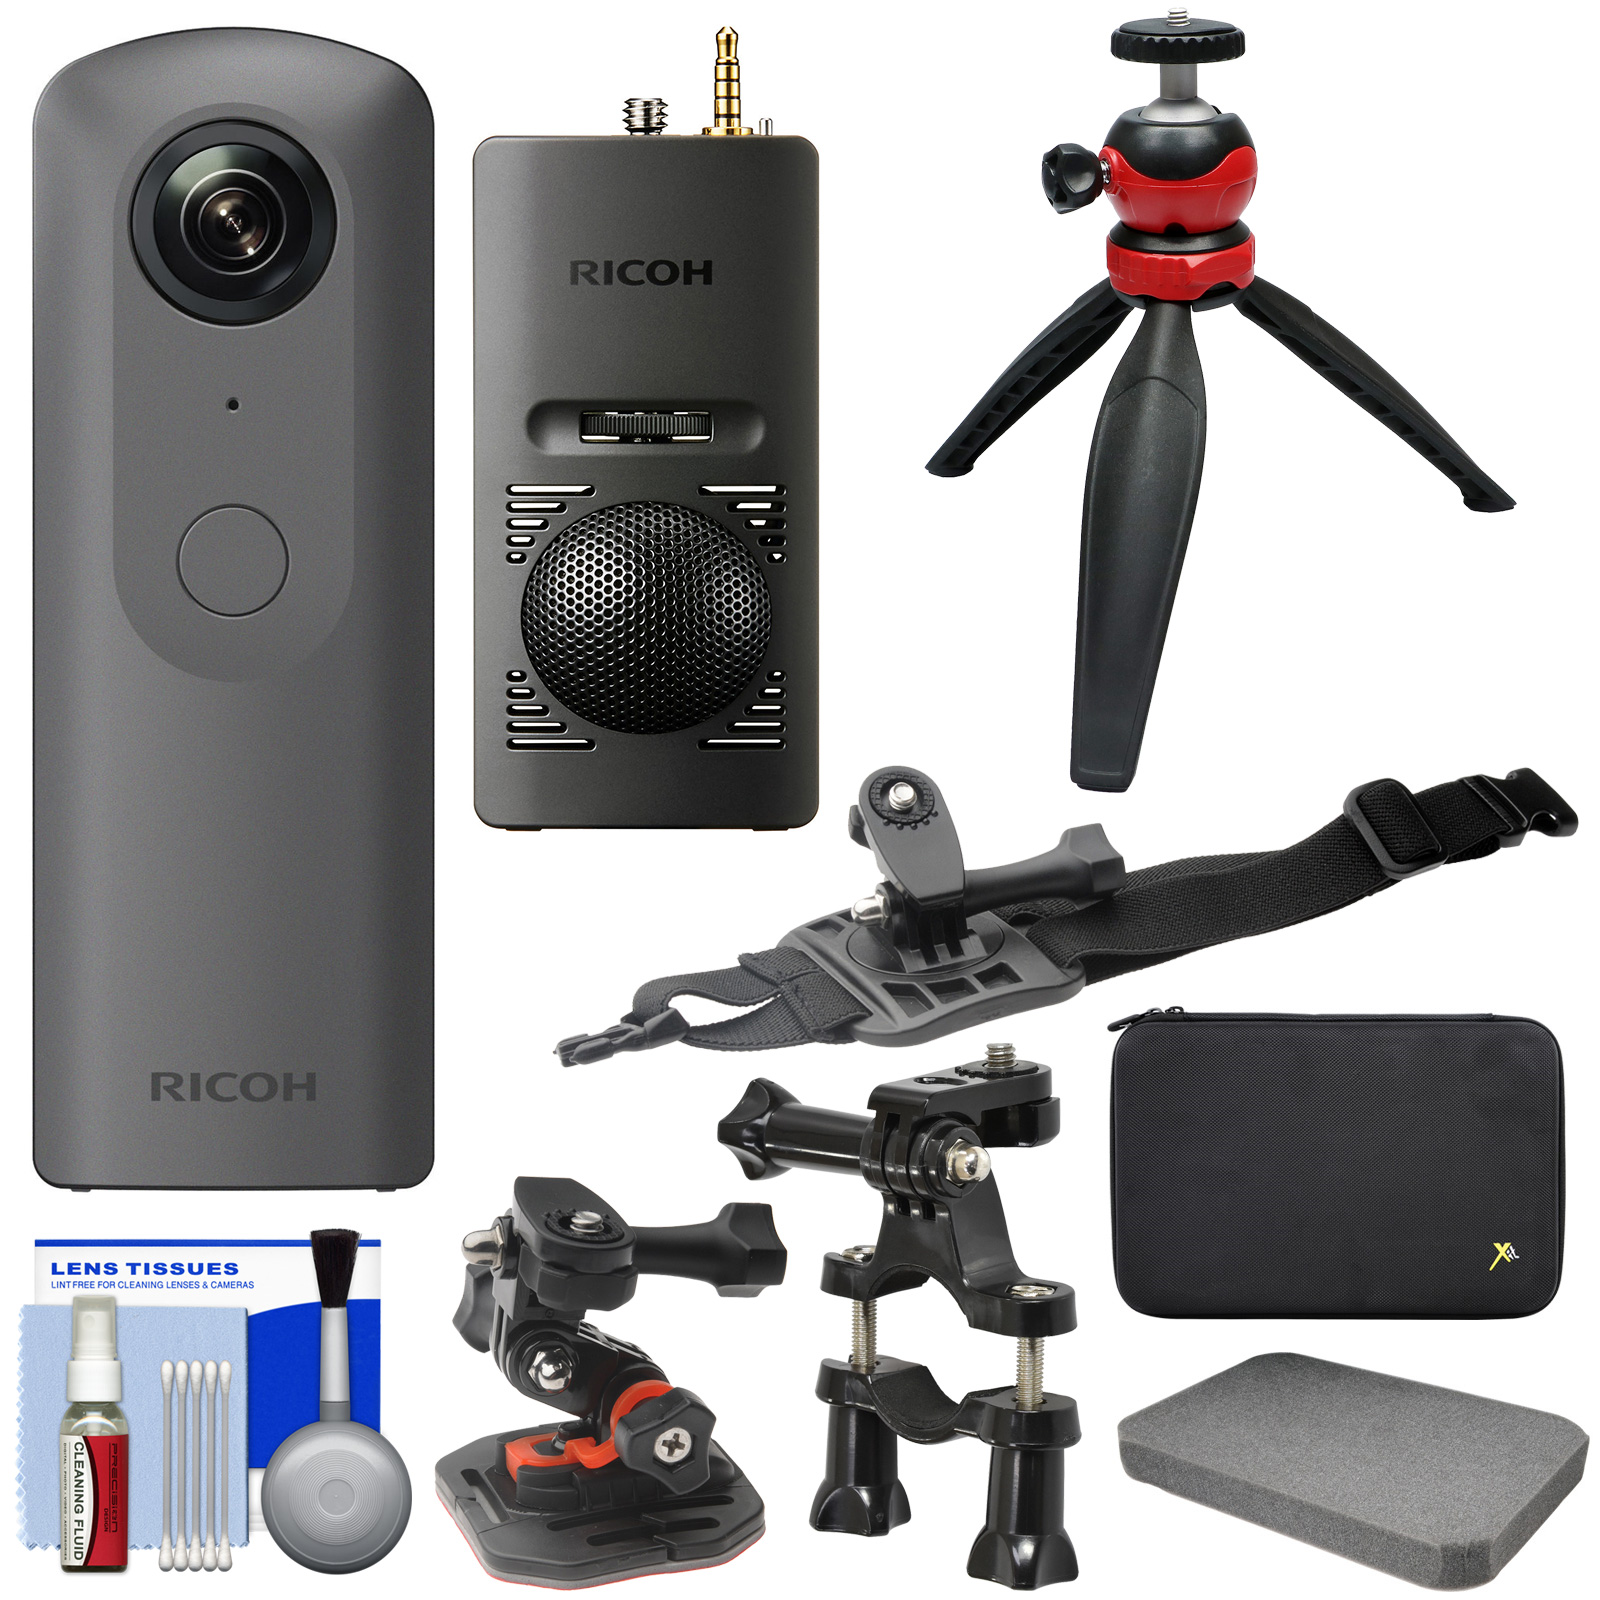 Ricoh Theta V 360-Degree Spherical 4K HD Digital Camera with TA-1 3D Microphone + Case + Action Mounts + Tripod + Kit